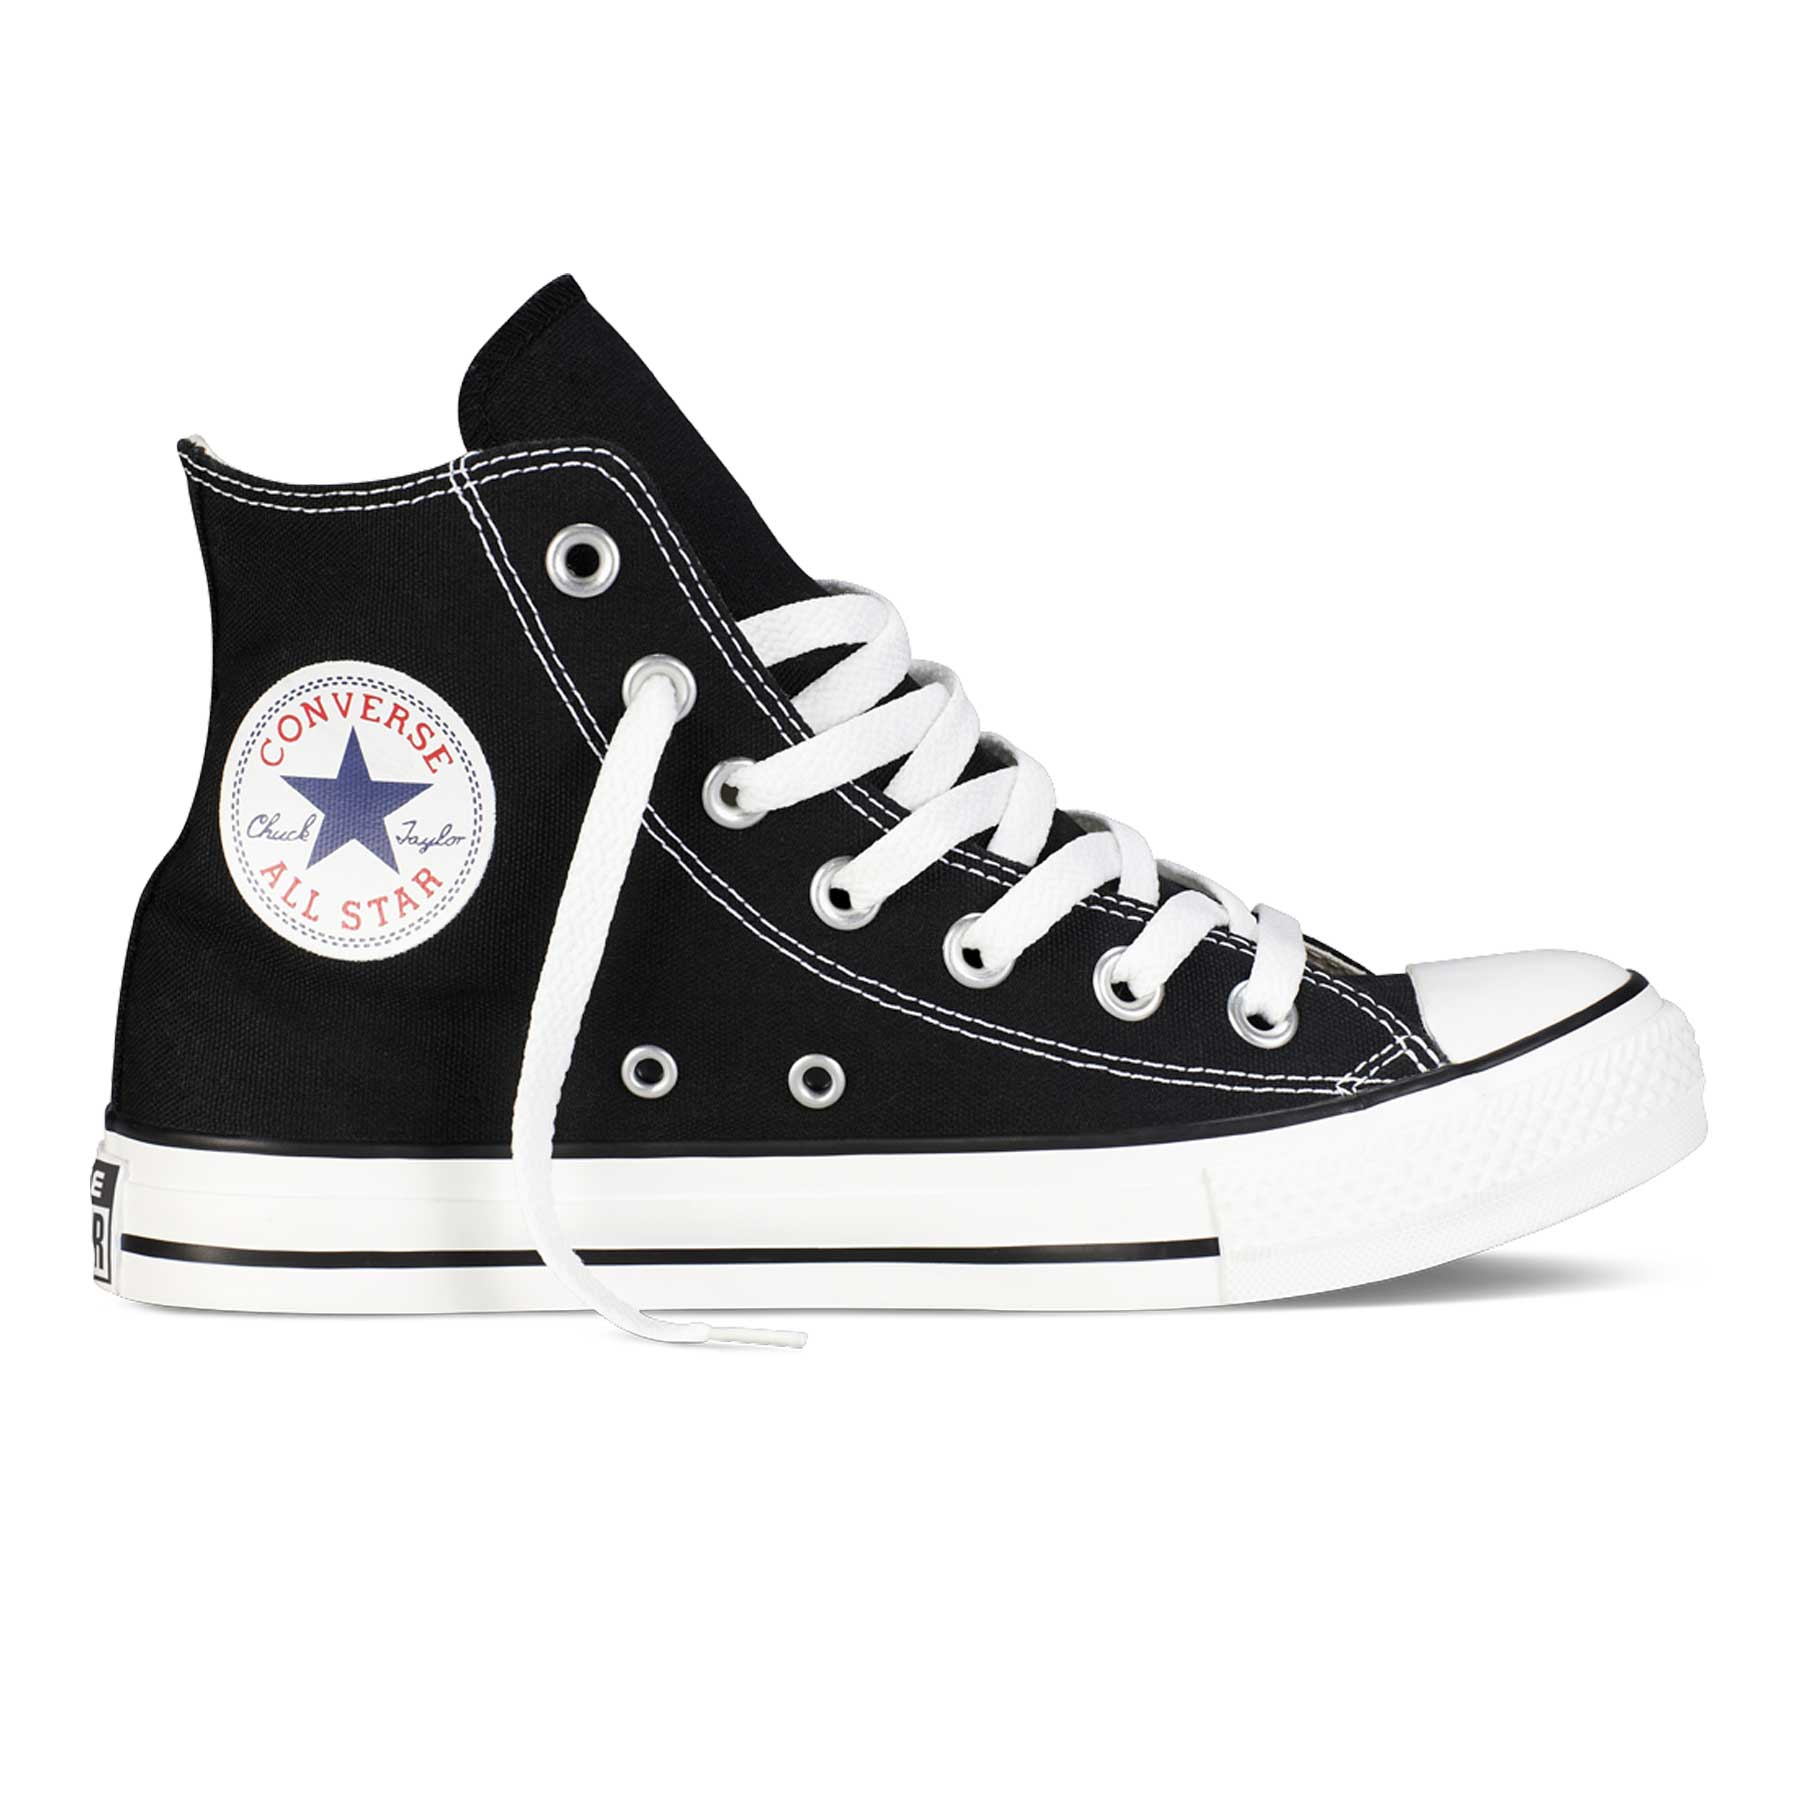 CHUCK TAYLOR ALL STAR HI NERE